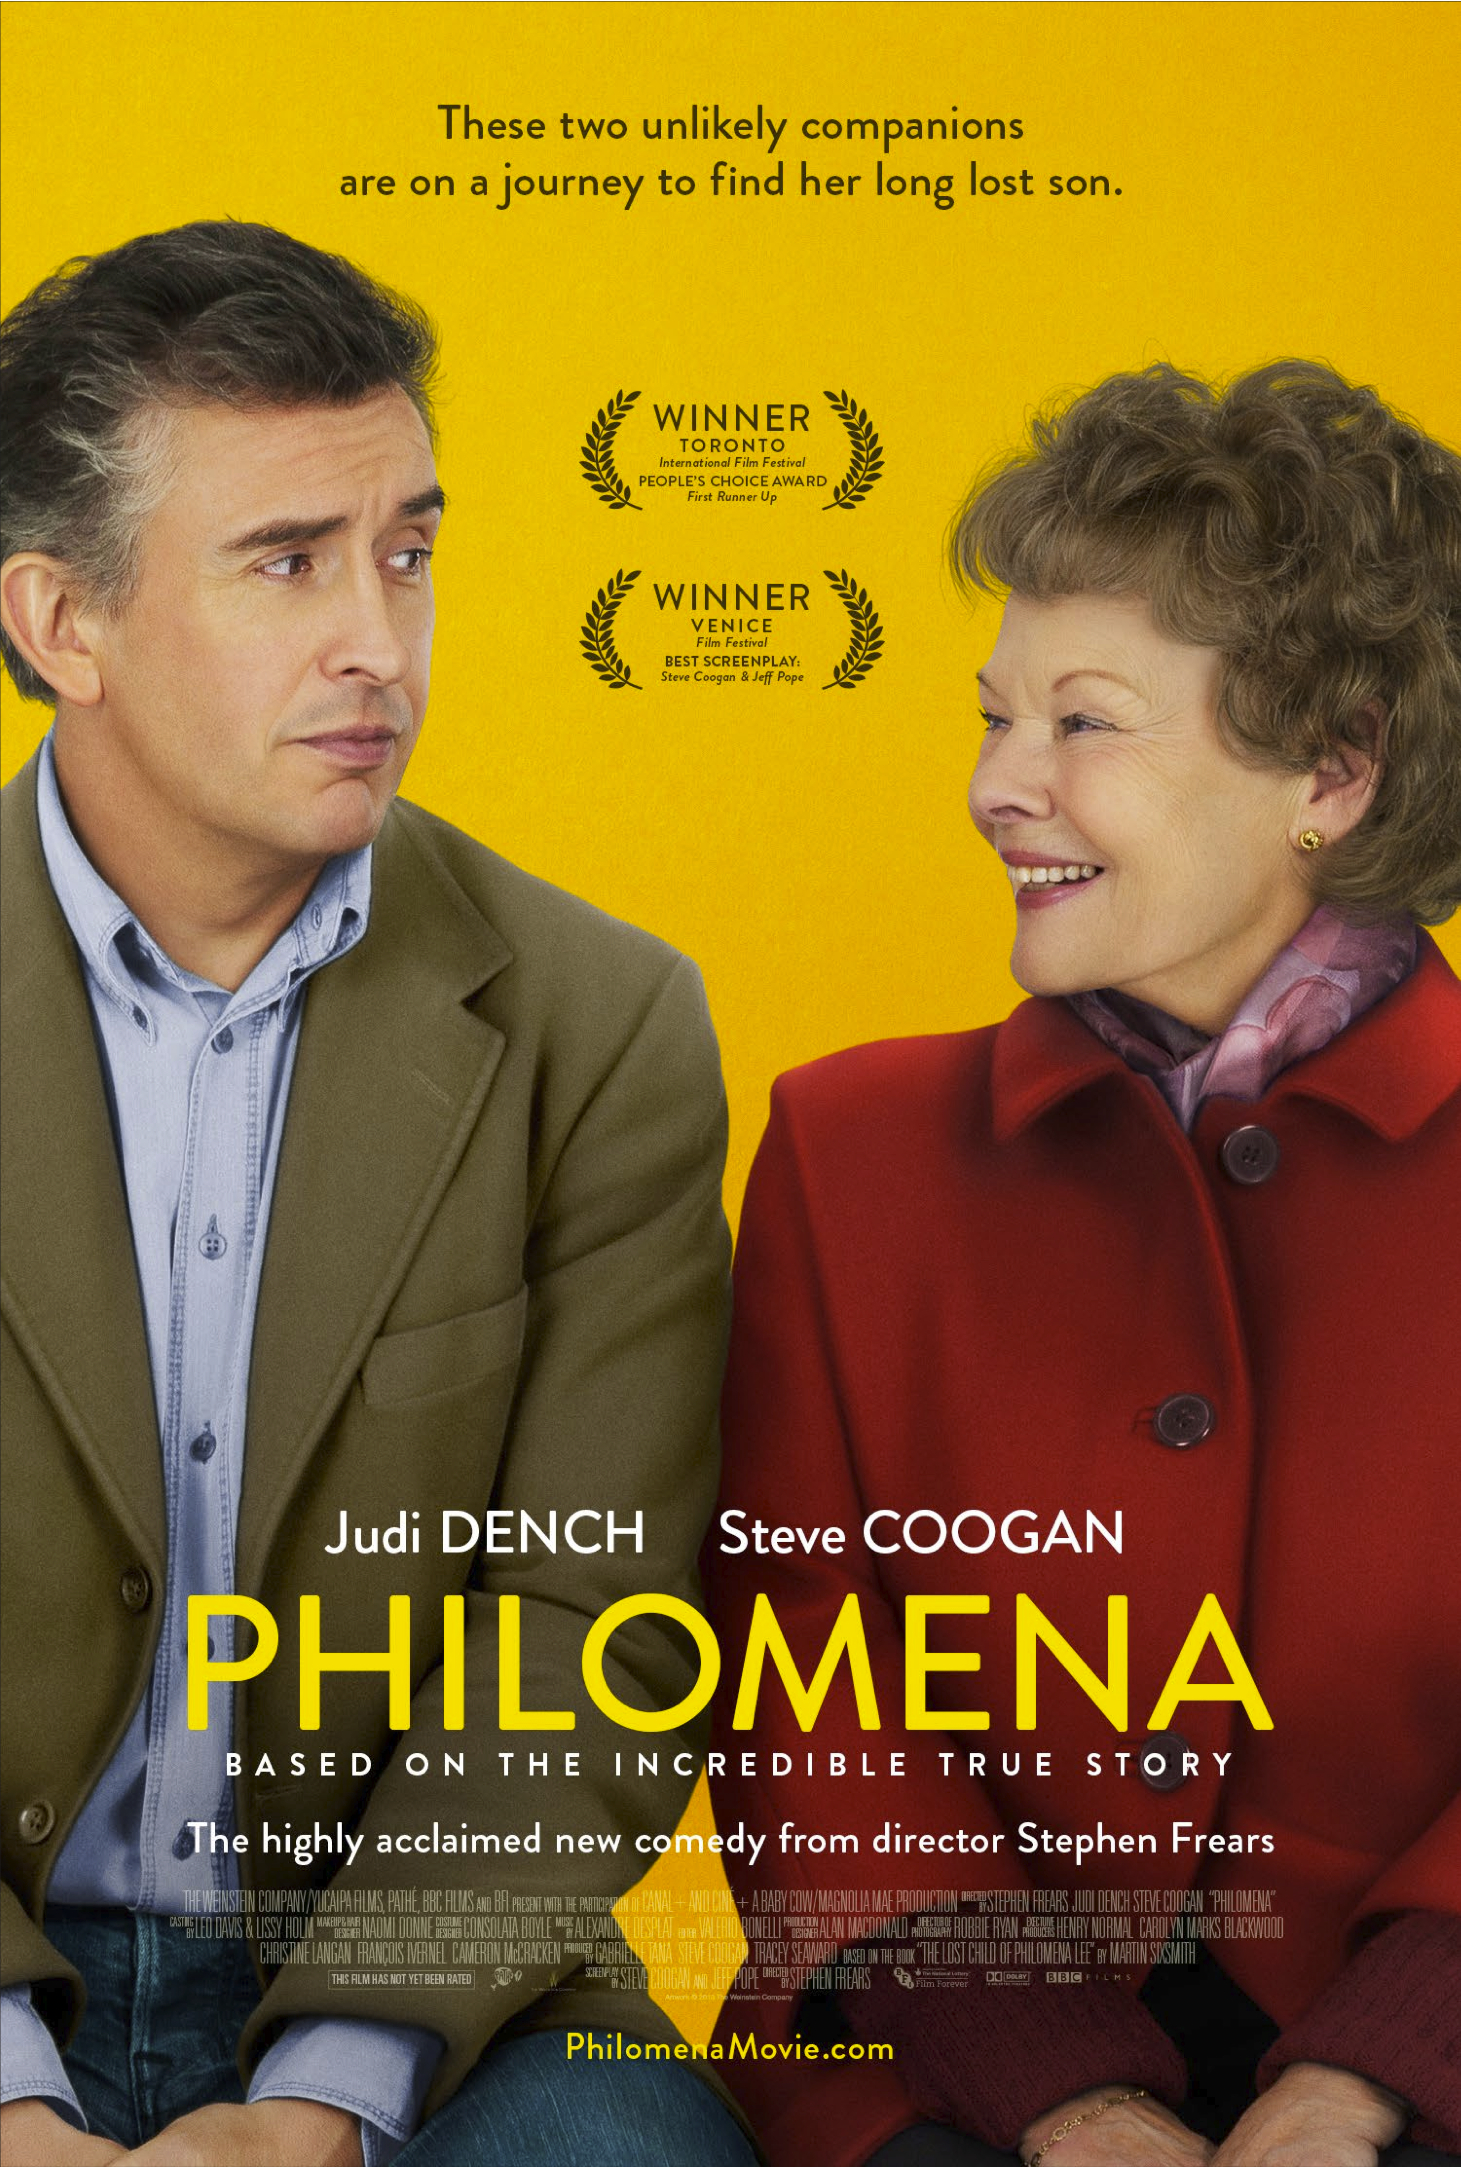 First Poster for Stephen Frears' 'Philomena'